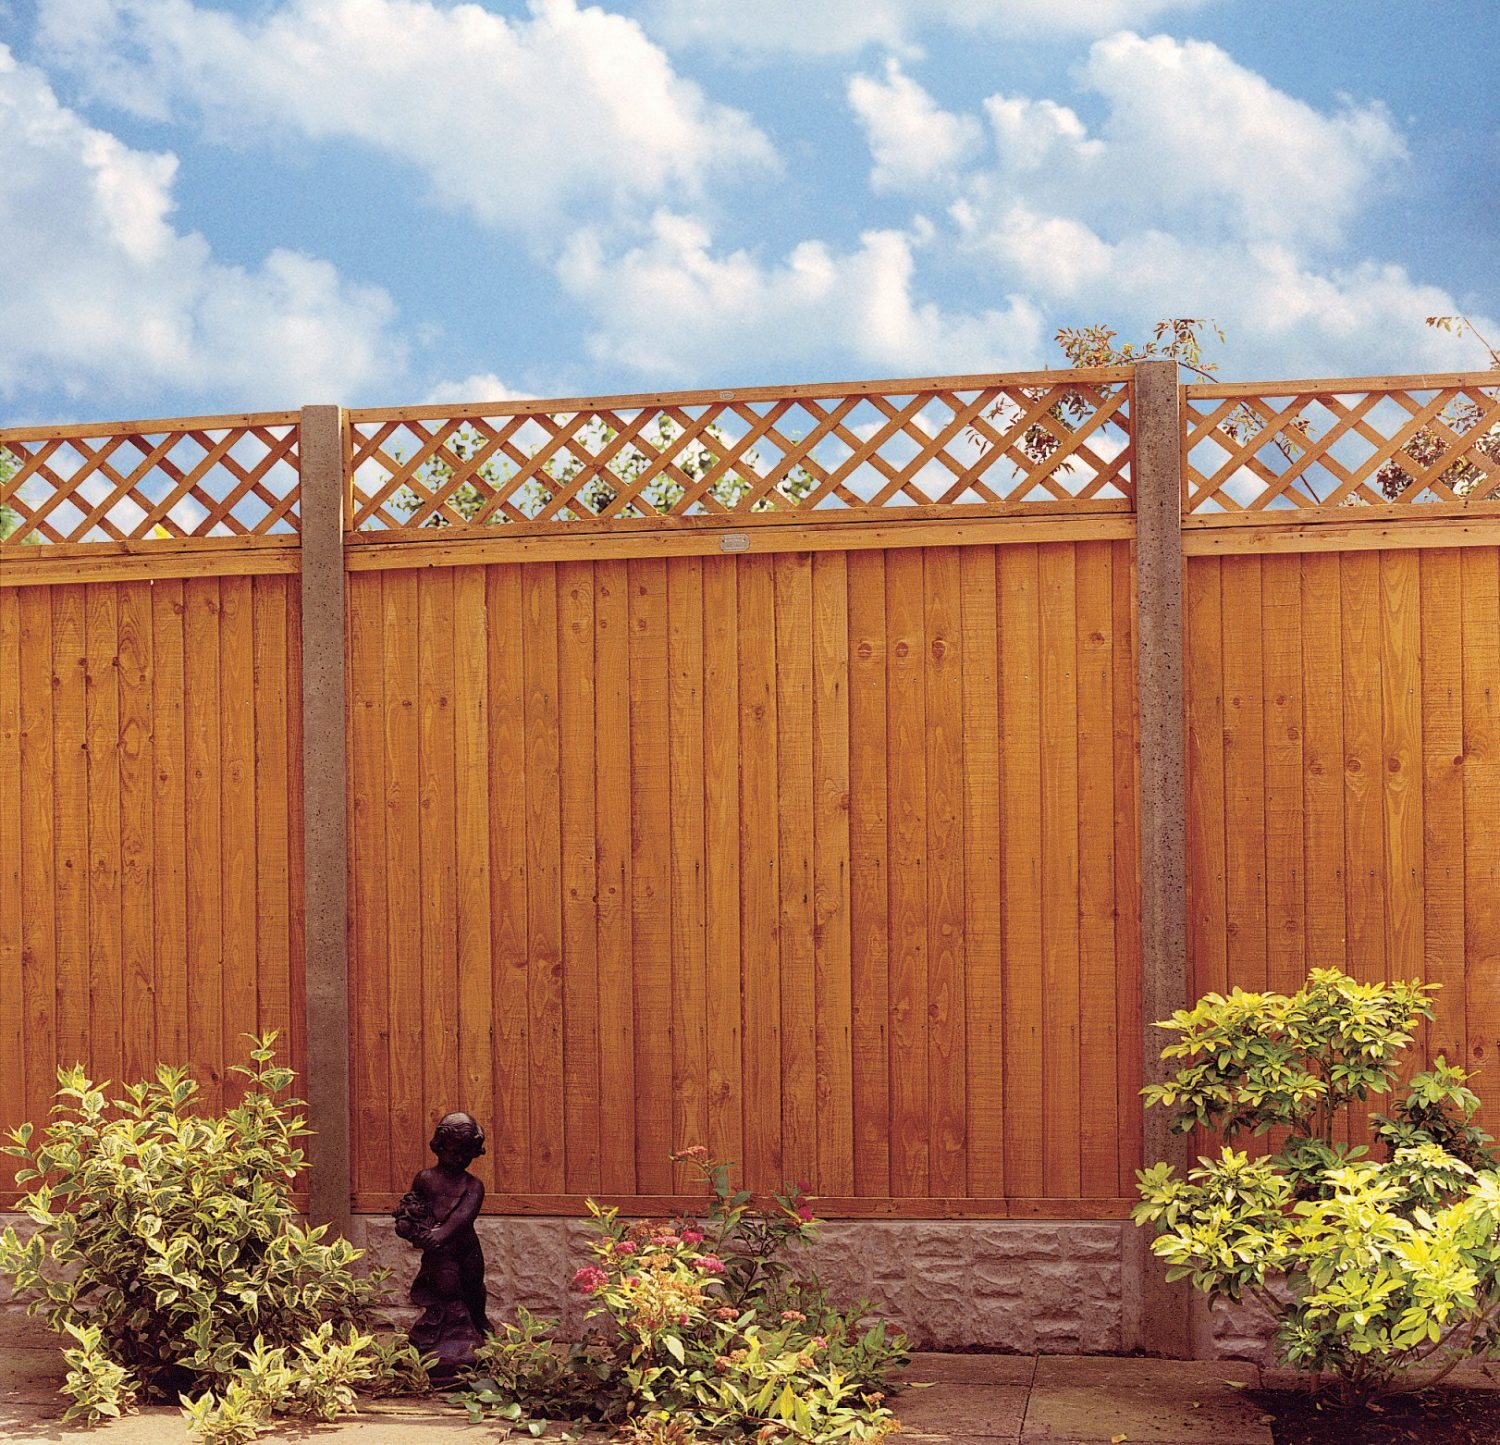 A photo of a gold closeboard fence panels with trellis